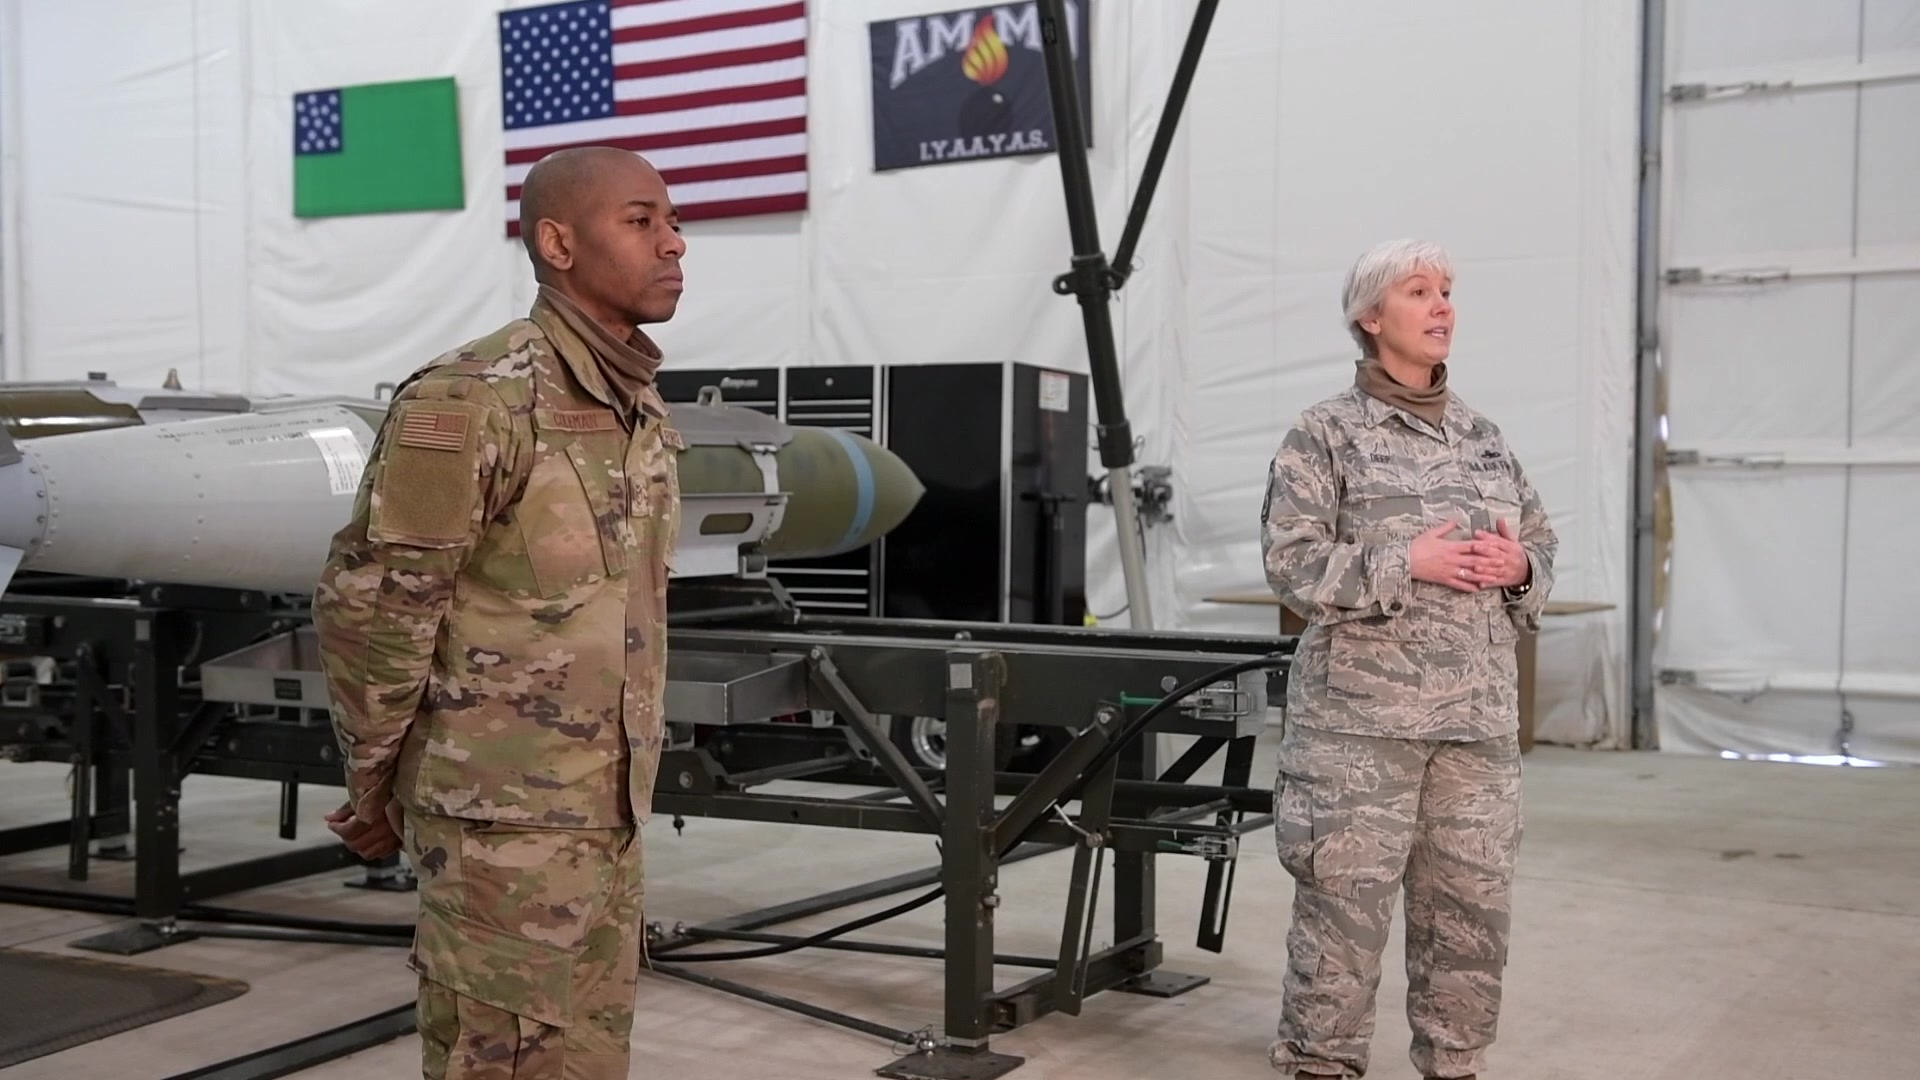 SMSgt Tina Deep and TSgt Juan Coleman bring you an important update from the Vermont Air National Guard command team on our continued response, as well as wing initiatives, during the COVID-19 pandemic.